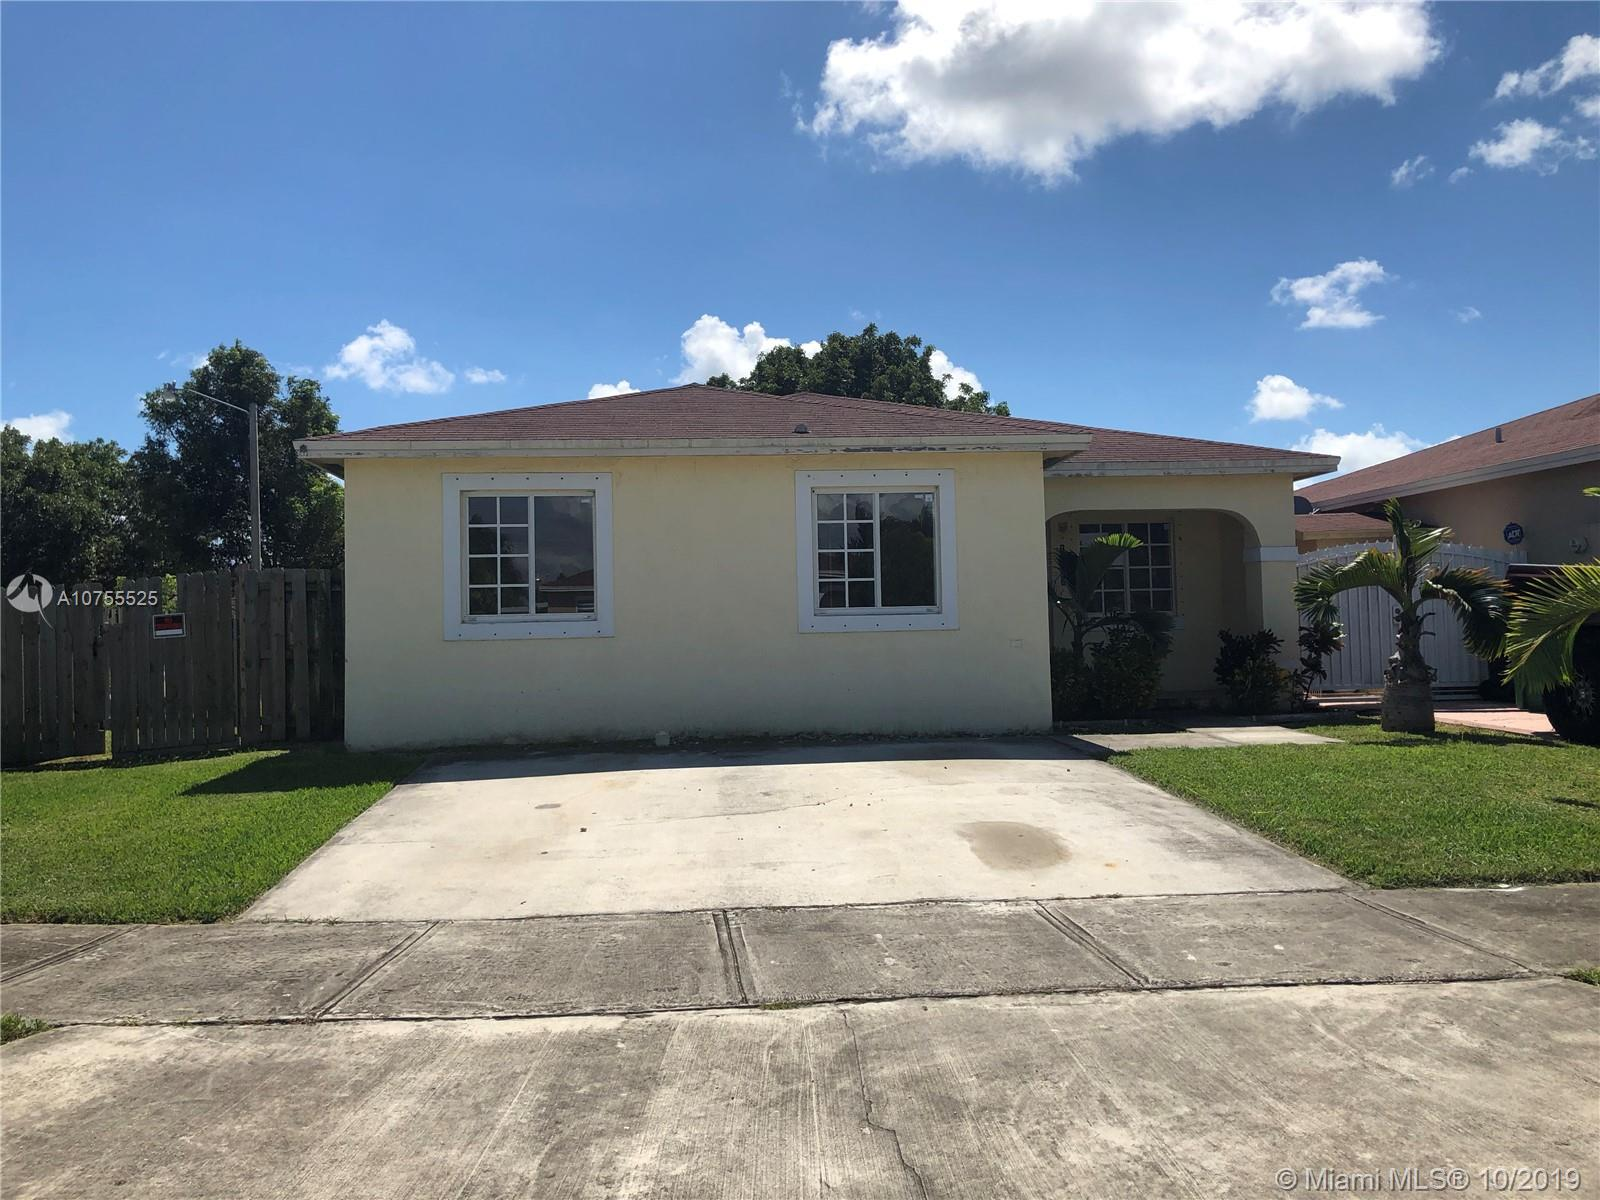 13402 SW 269th St, Homestead, FL 33032 - Homestead, FL real estate listing